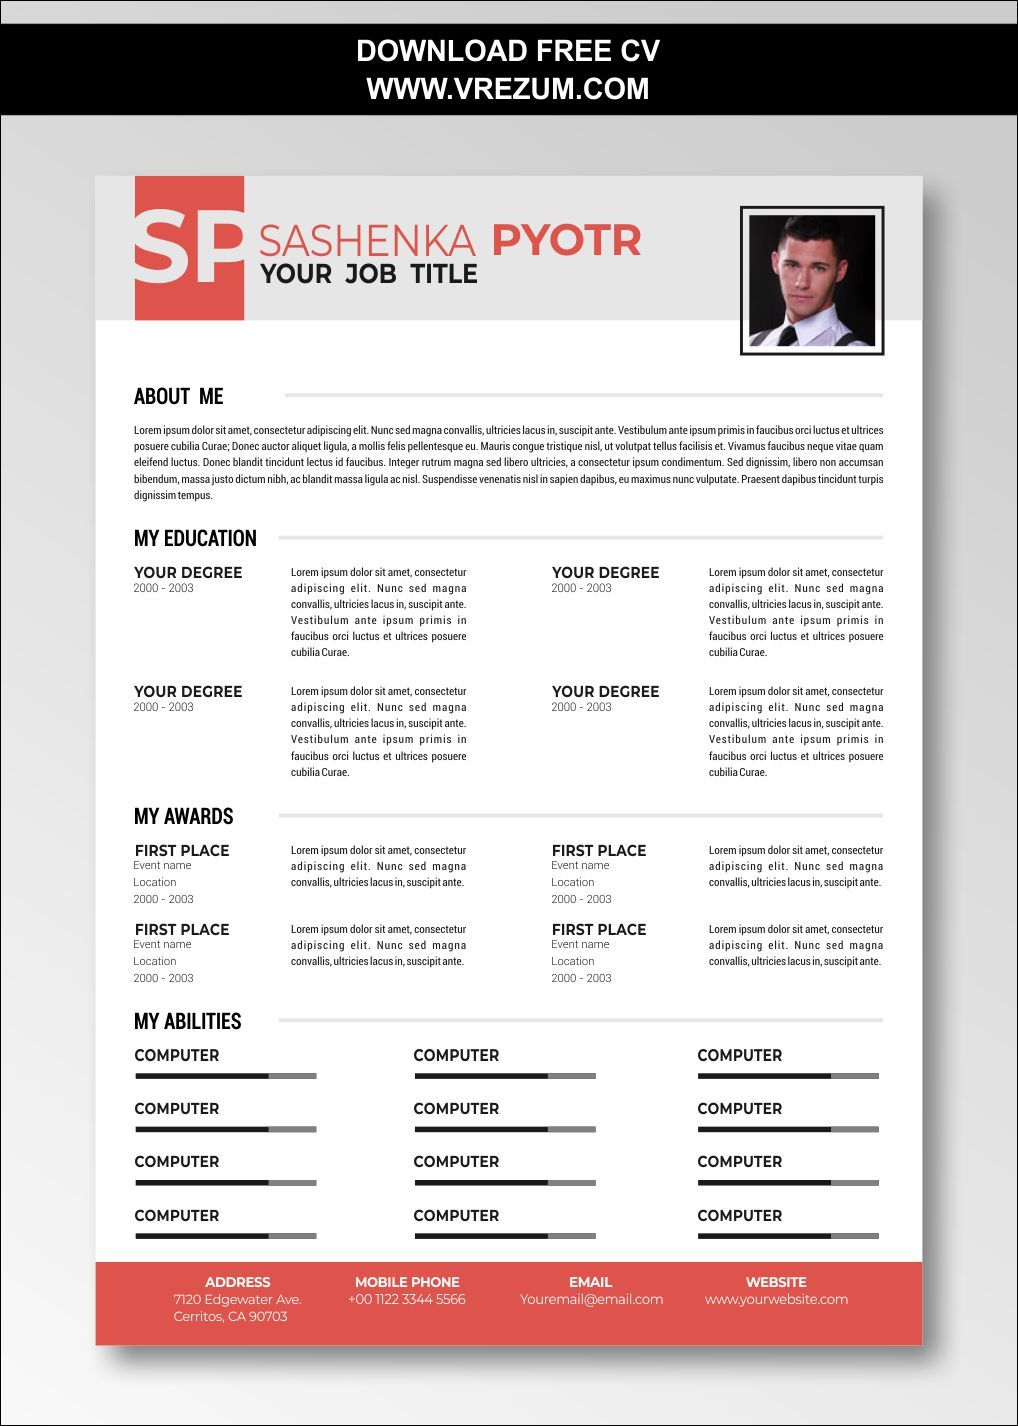 (EDITABLE) FREE CV Templates For High School Students in